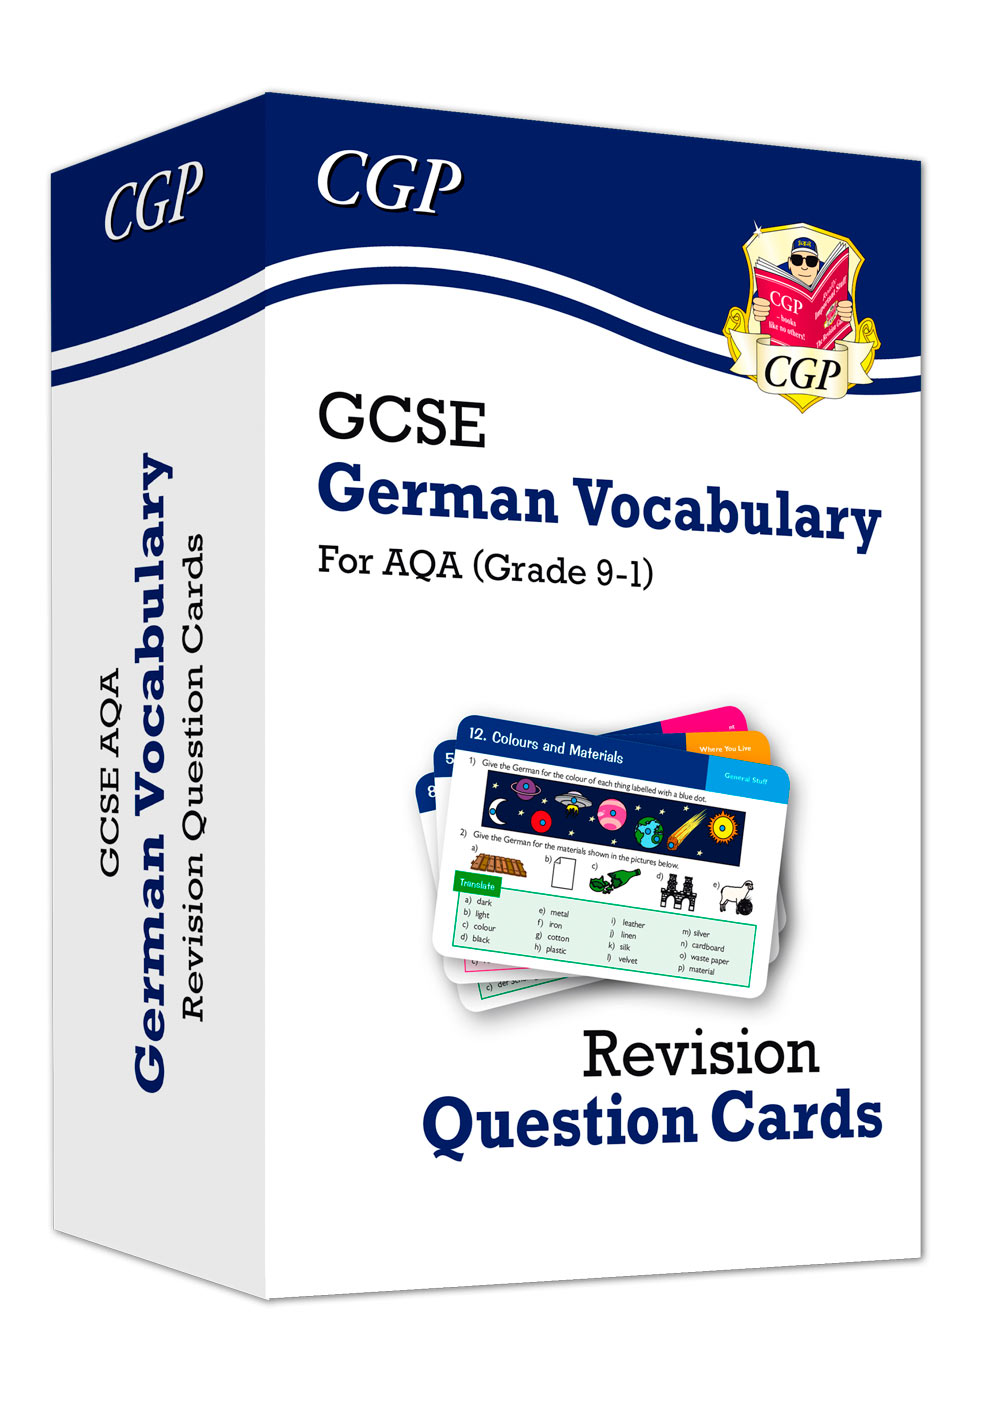 DAVF41 - New Grade 9-1 GCSE AQA German: Vocabulary Revision Question Cards